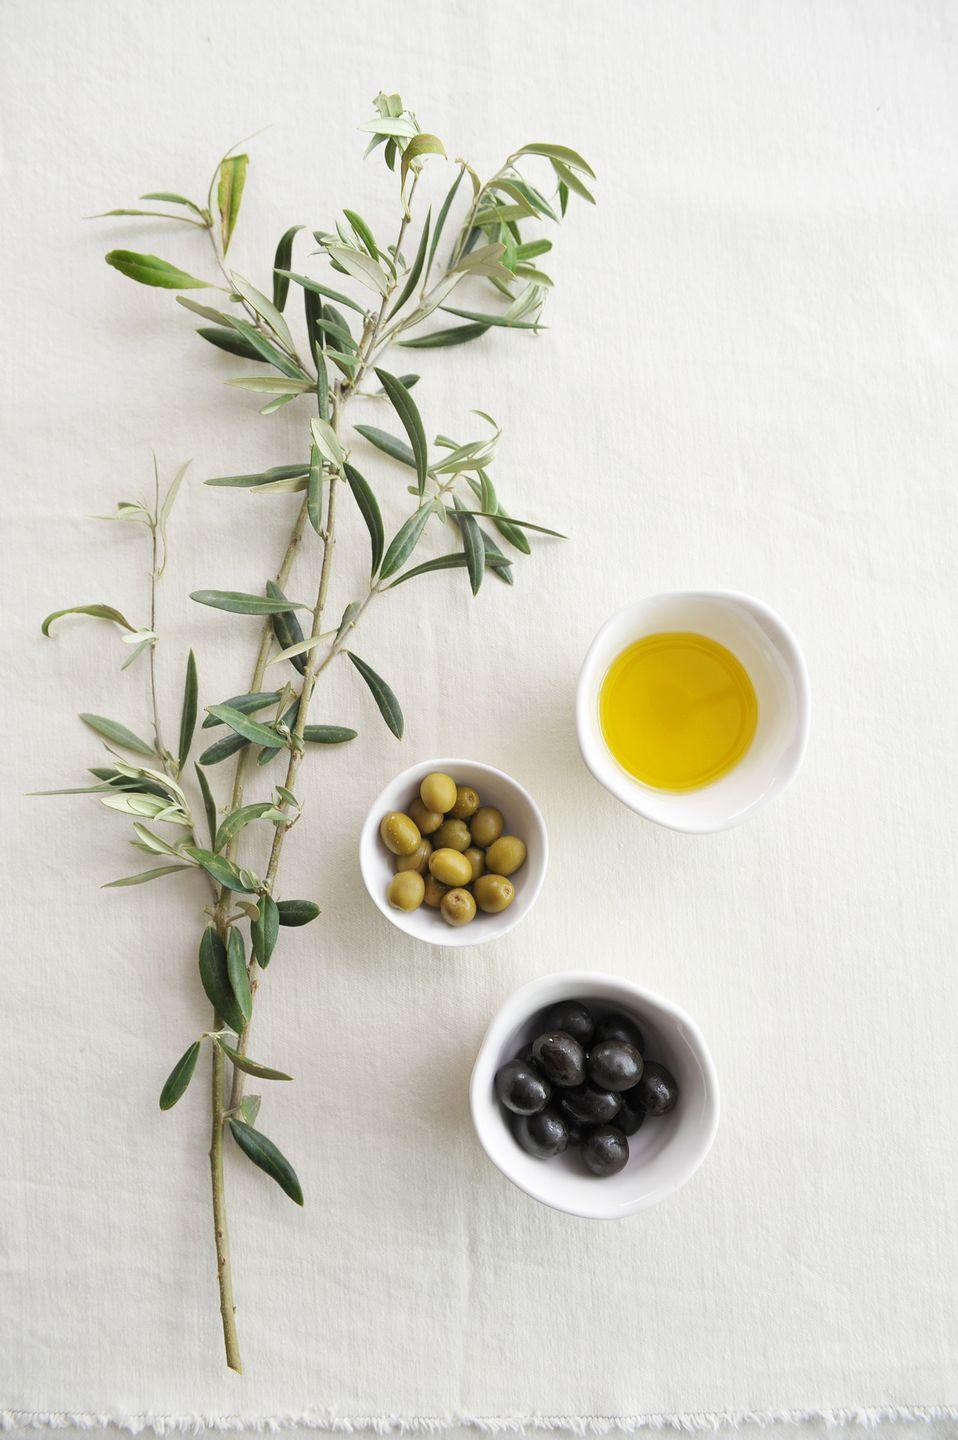 <p>Adopting the Mediterranean diet – which features olives, as well as nuts, vegetables, and fish – may be the most protective dietary move you can make, finds research. </p>